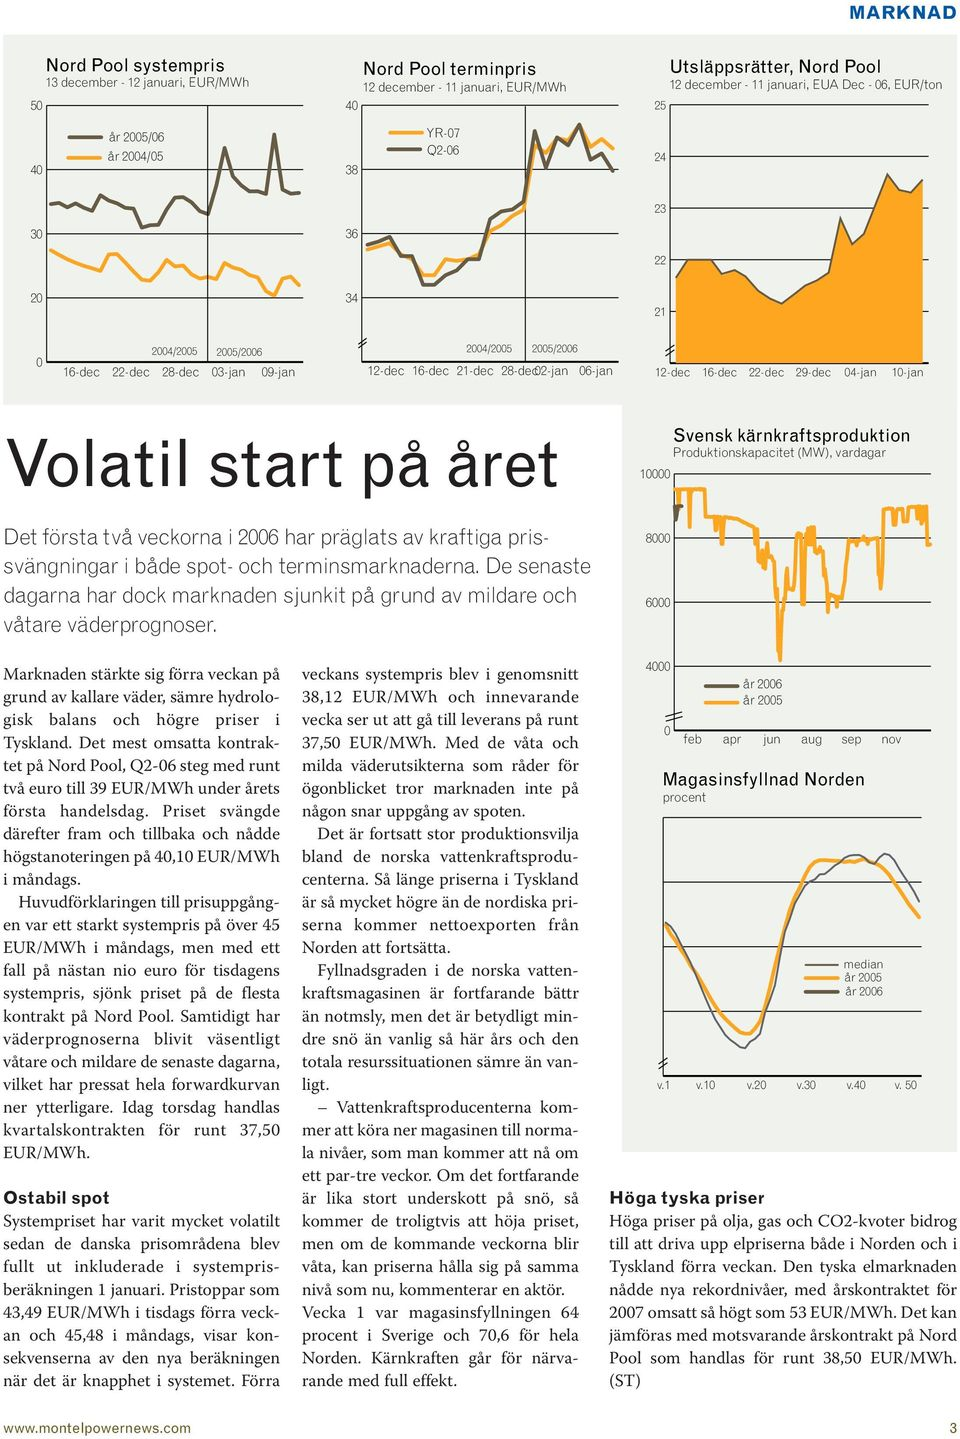 16-dec 22-dec 29-dec 04-jan 10-jan Volatil start på året 10000 Svensk kärnkraftsproduktion Produktionskapacitet (MW), vardagar Det första två veckorna i 2006 har präglats av kraftiga prissvängningar